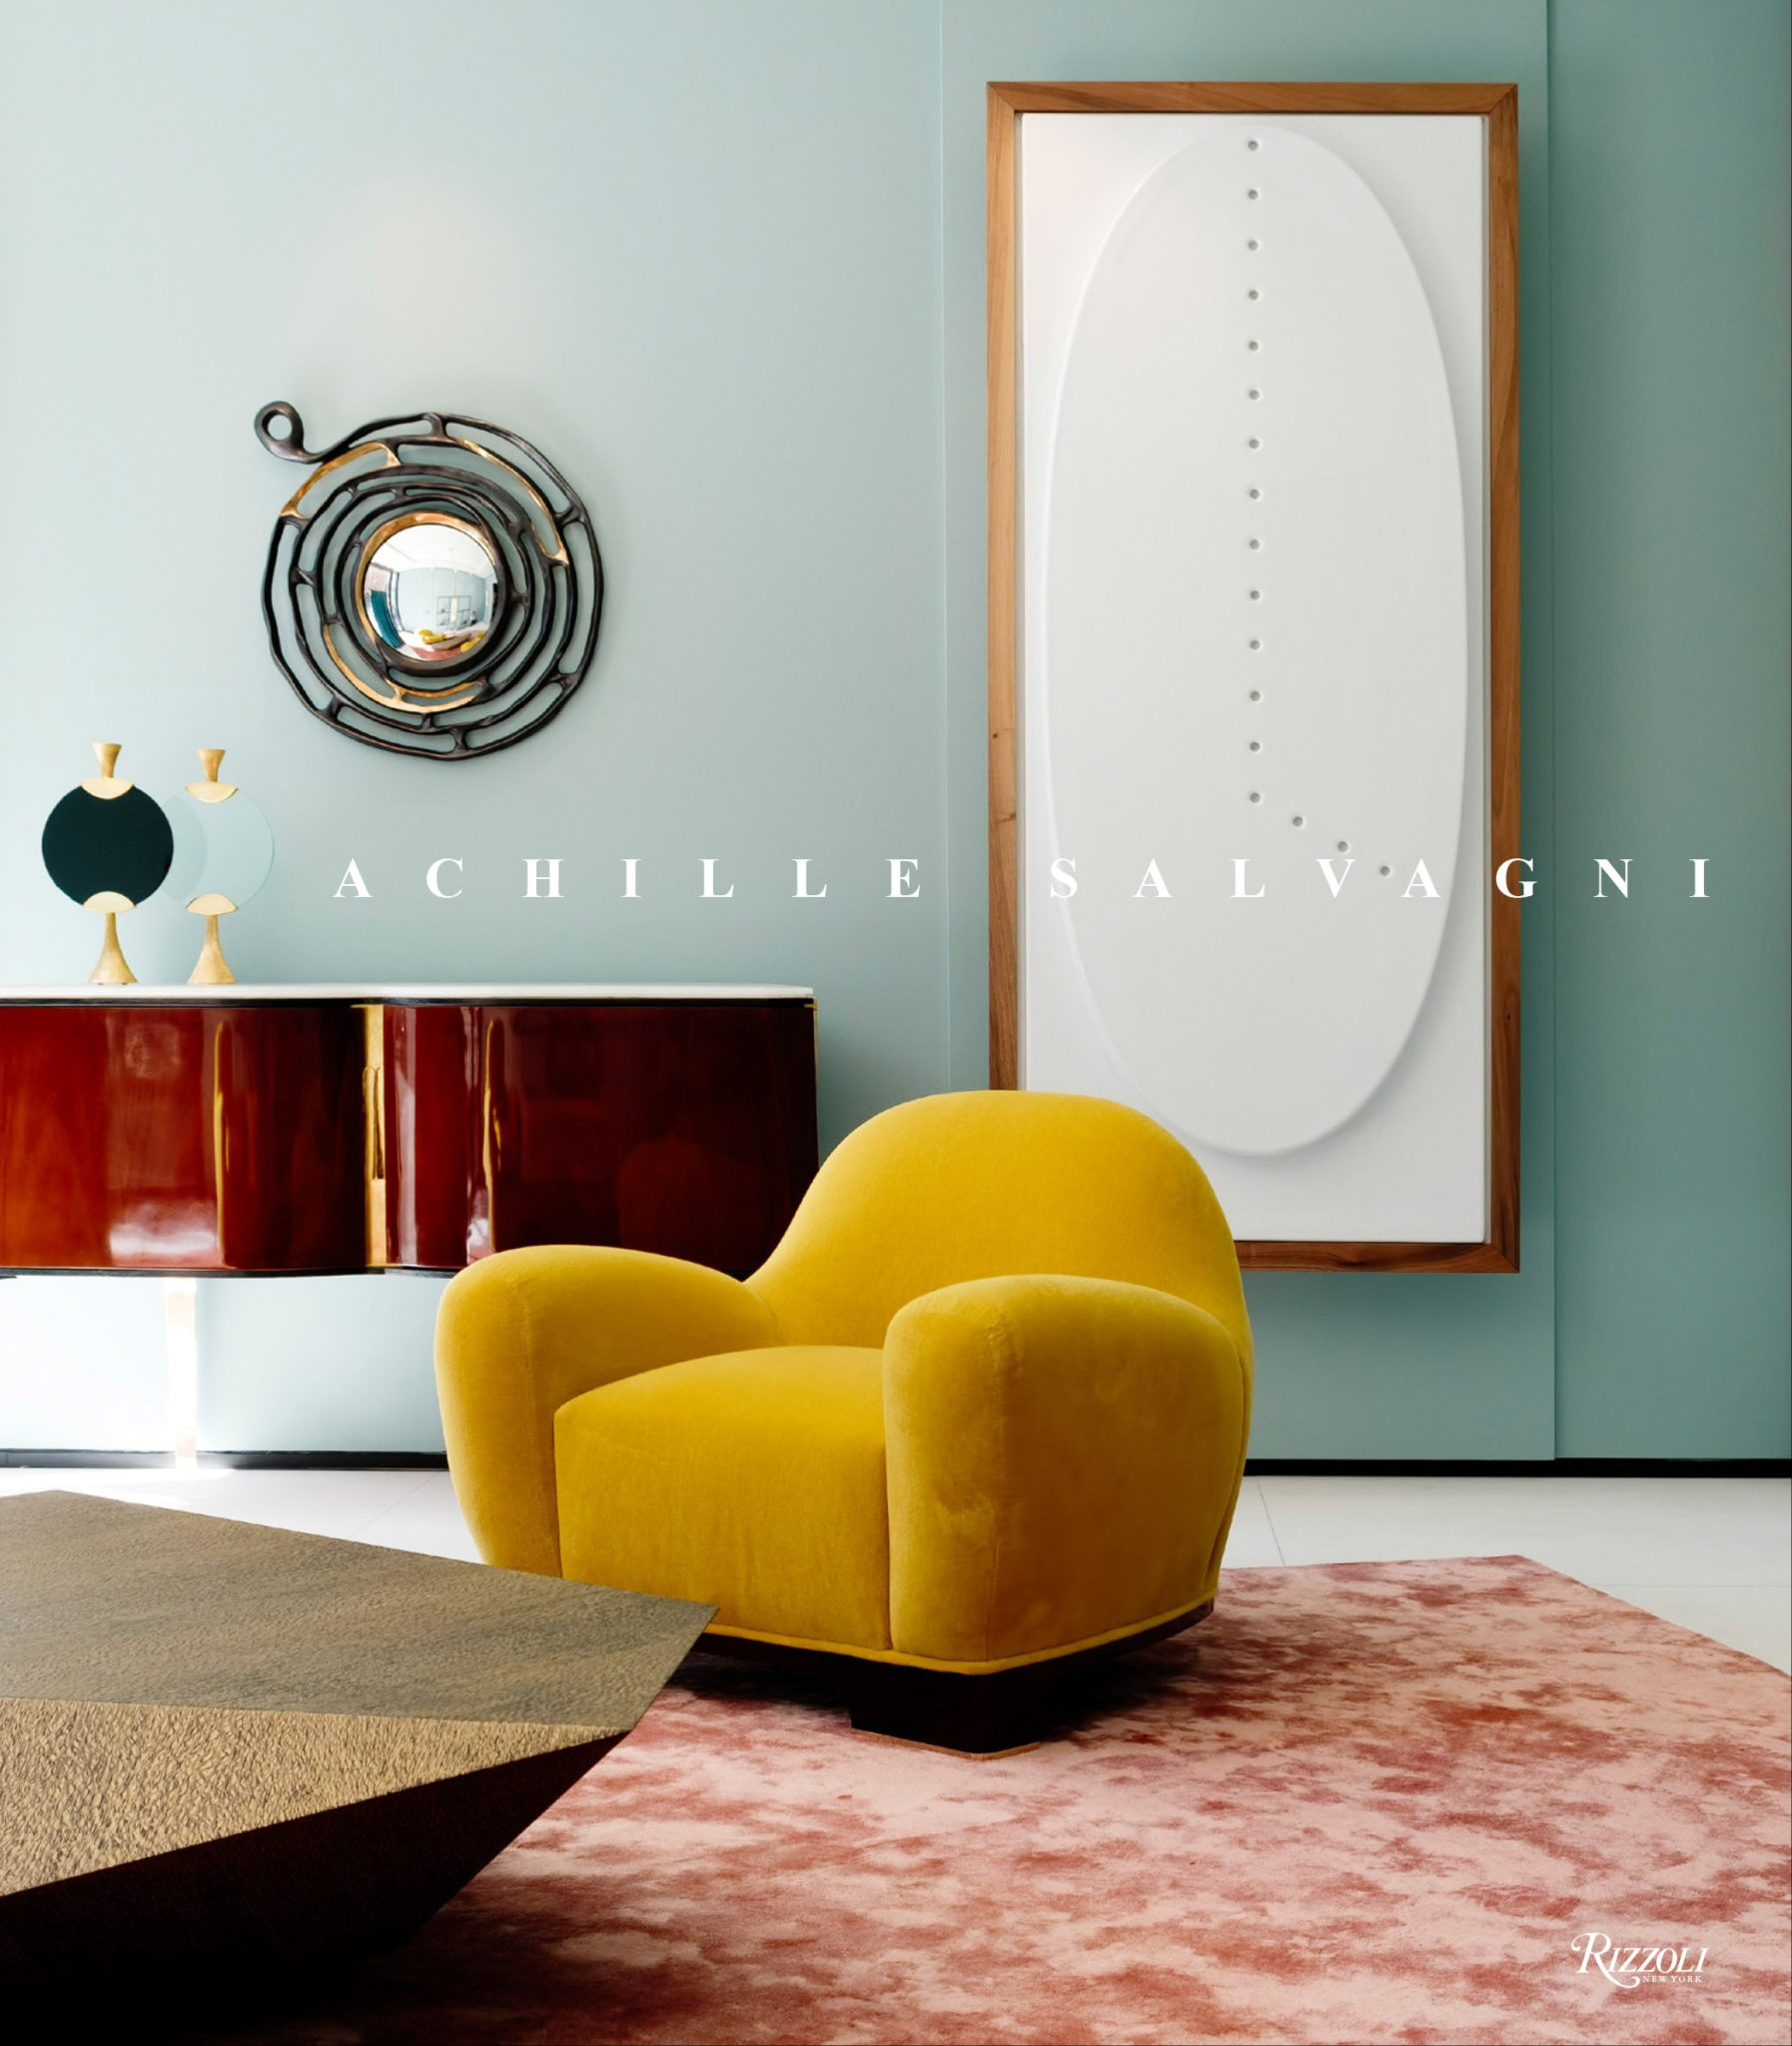 The designers's new book, Achille Salvagni, which was written by Pilar Viladasand published by Rizzoli.